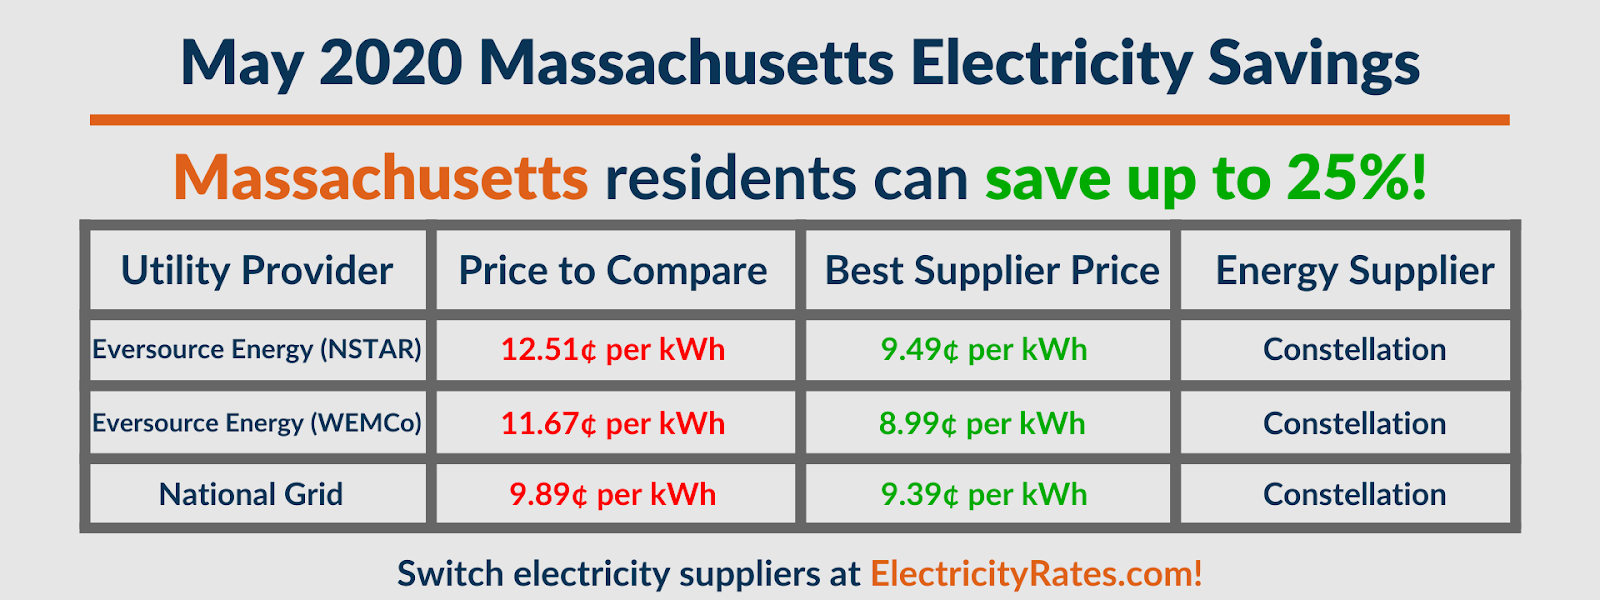 Graphic depicting May 2020 Massachusetts savings by utility